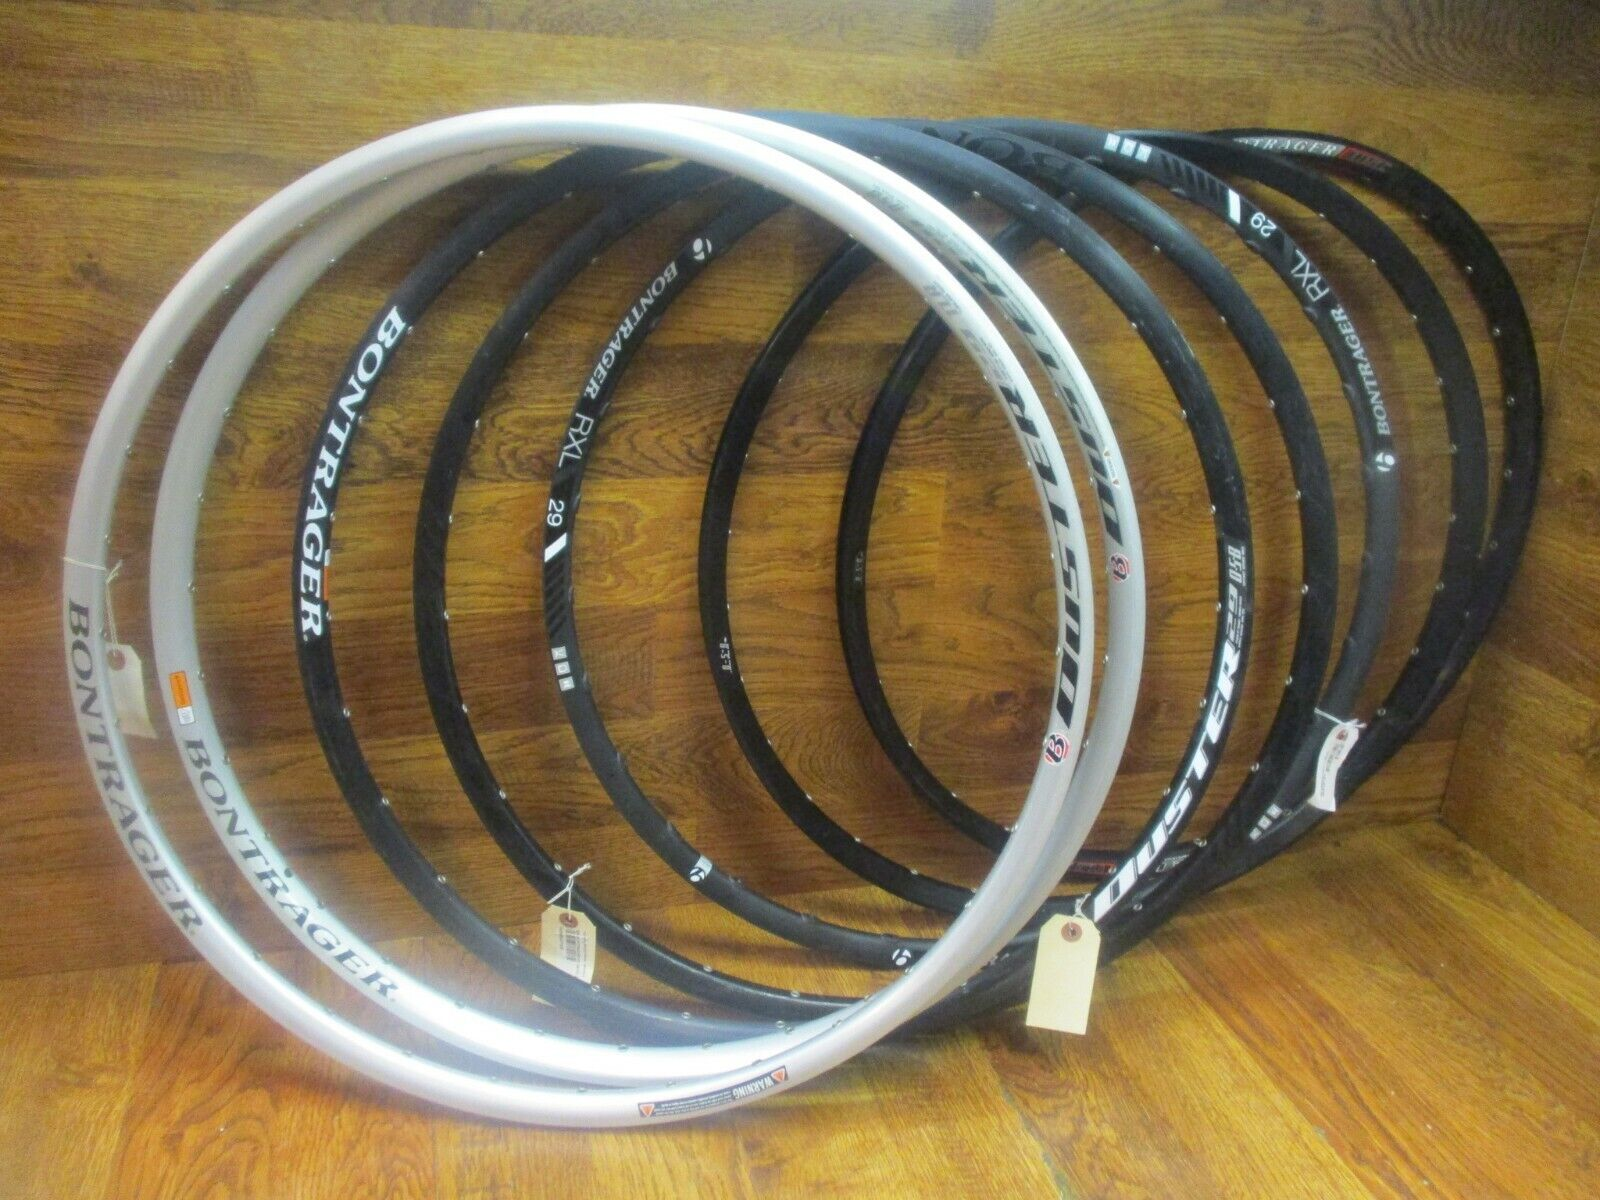 NOS BONTRAGER DUSTER MUSTANG RACE LITE   29  700C RIMS HOOPS (6) - WHEEL BUILDERS  cheapest price